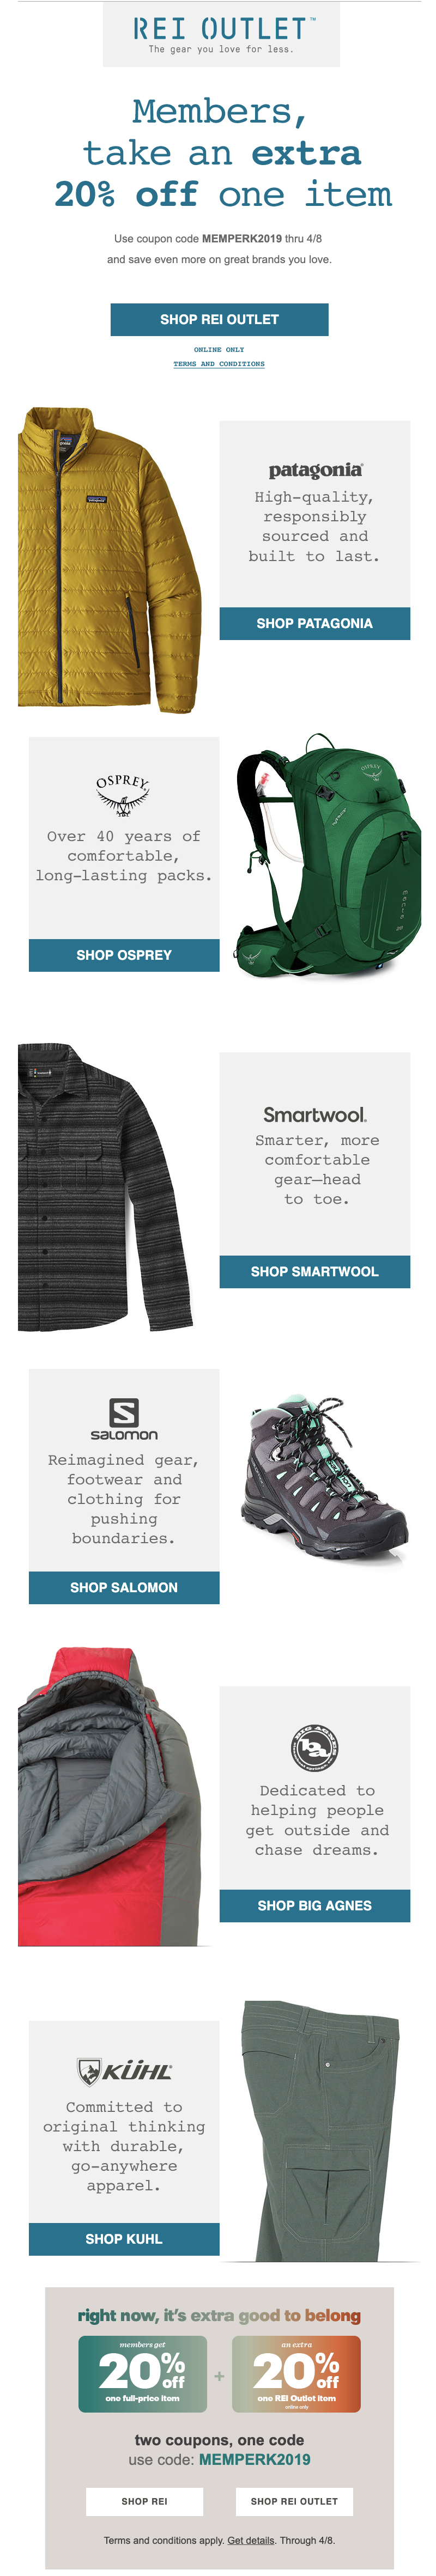 rei email marketing coupon